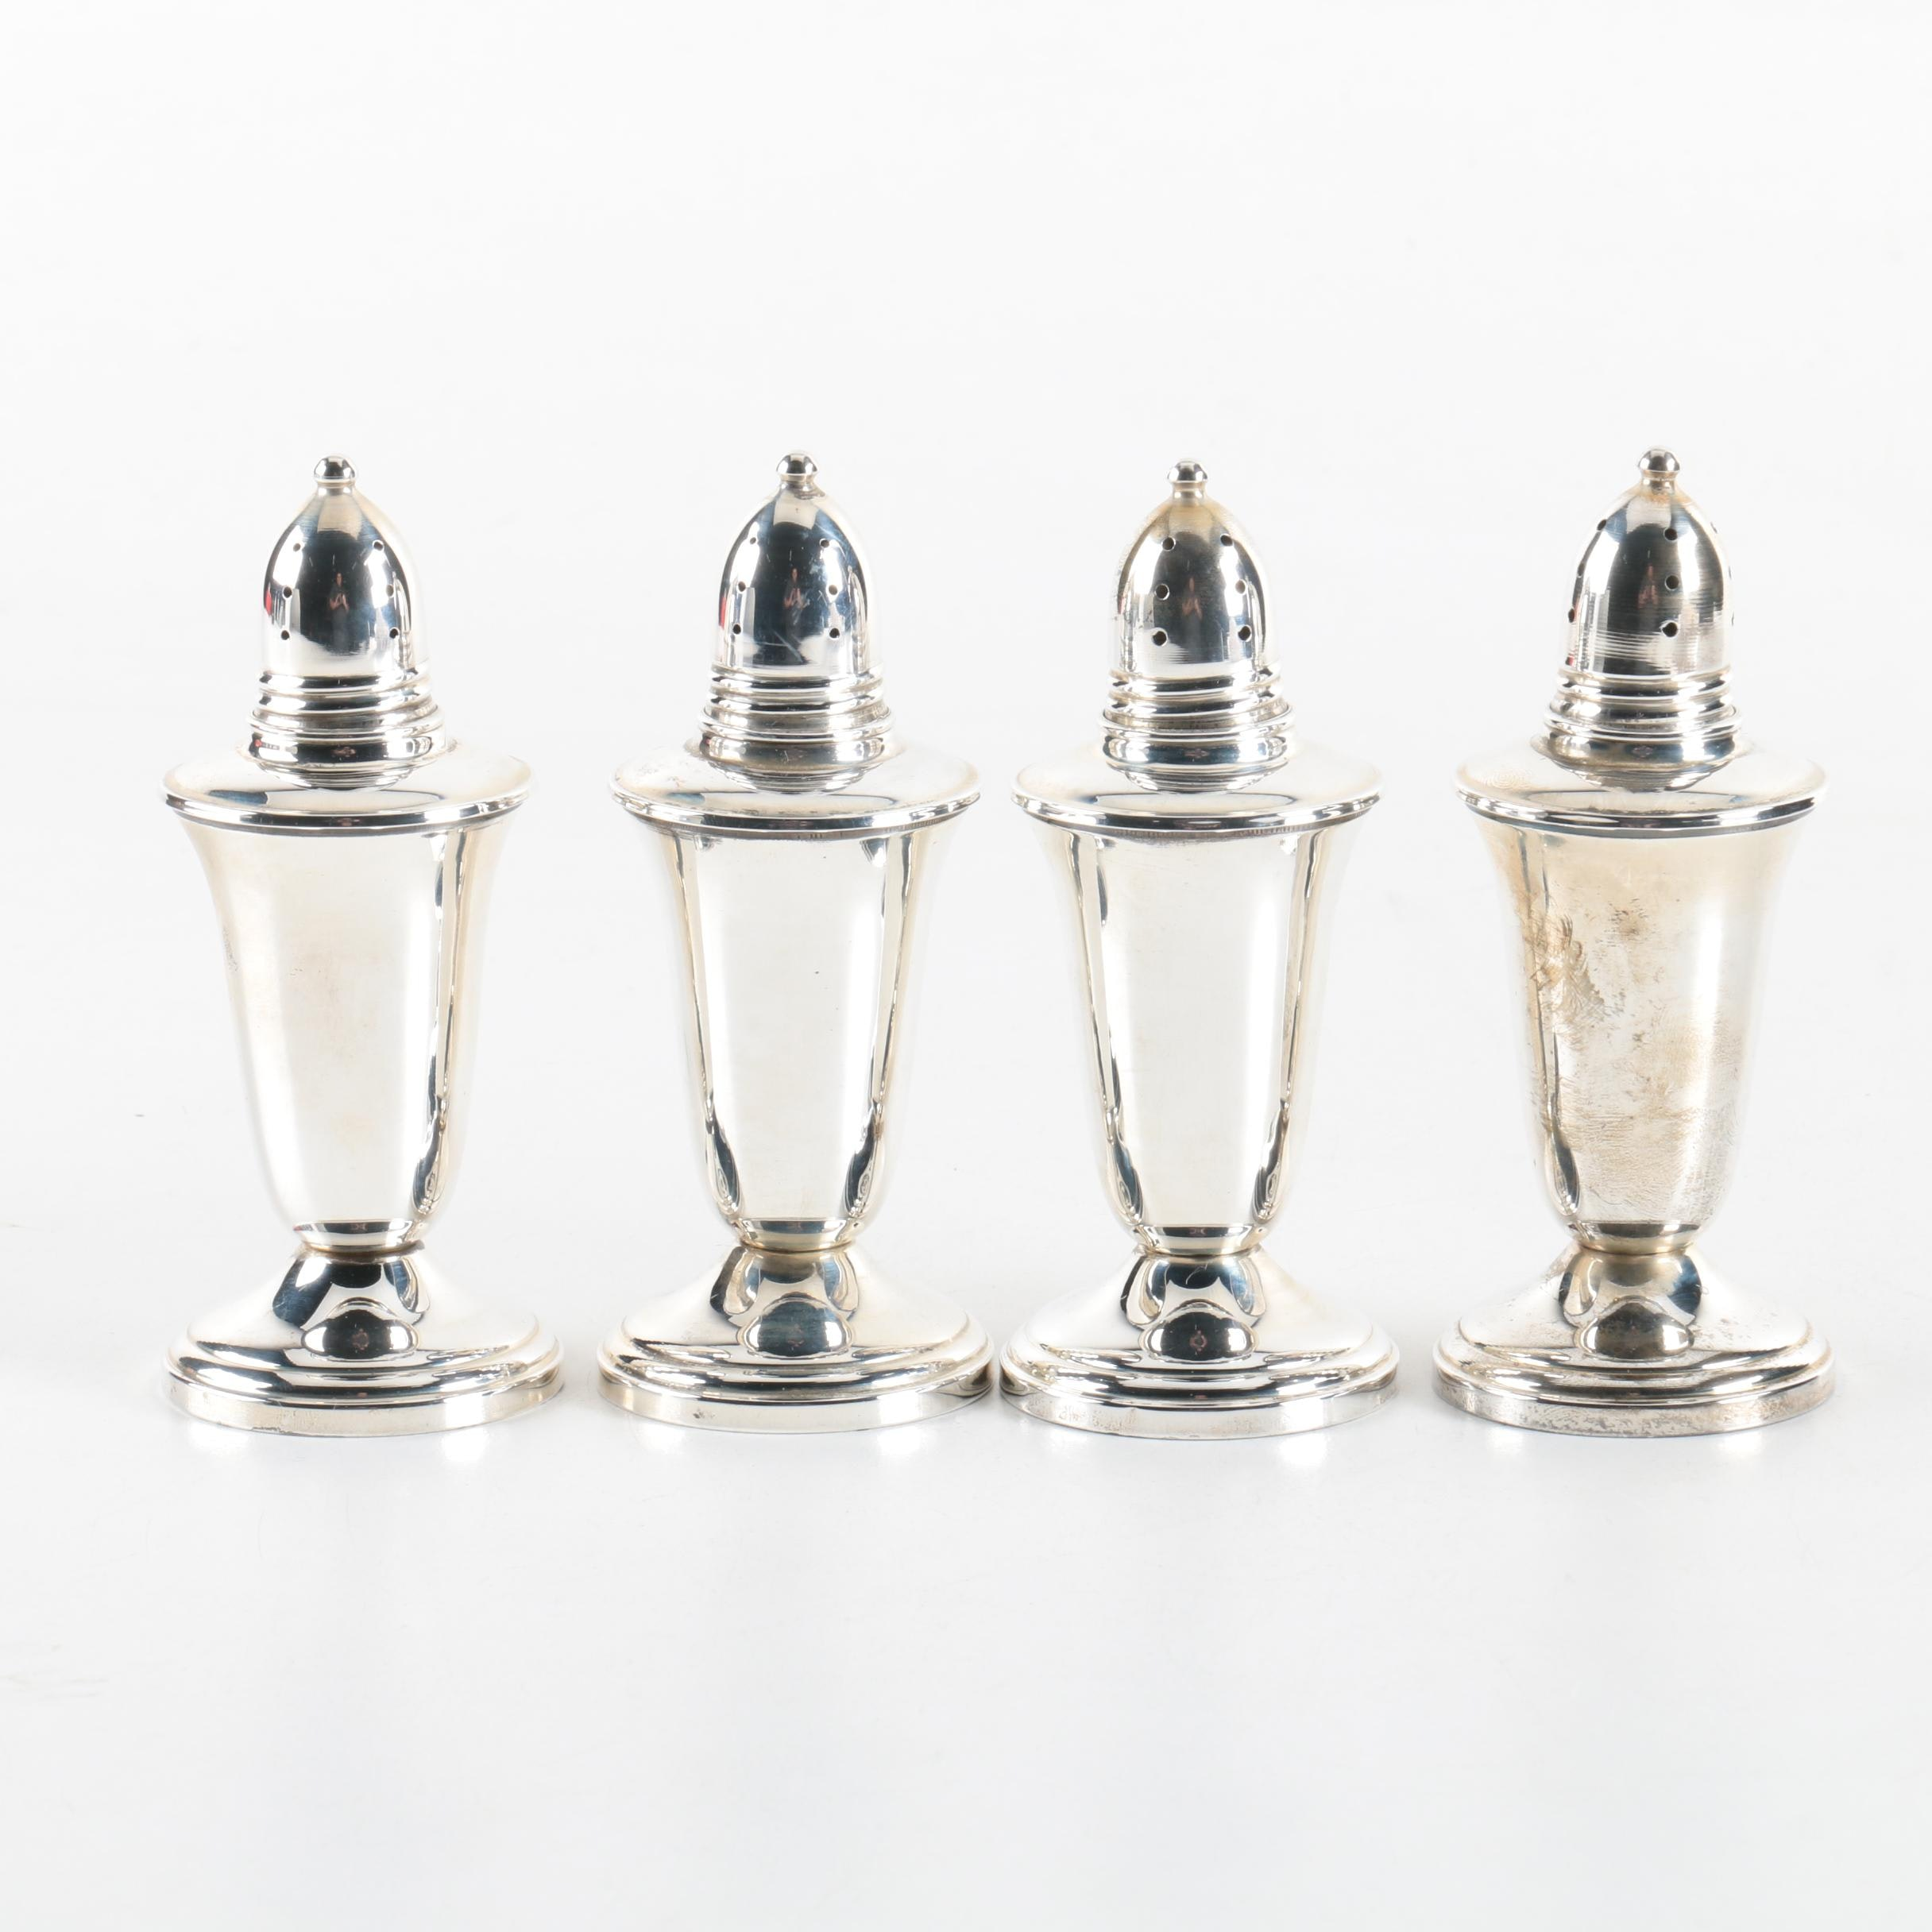 Collection of Crown Silver Co. Weighted Sterling Silver Salt and Pepper Shakers